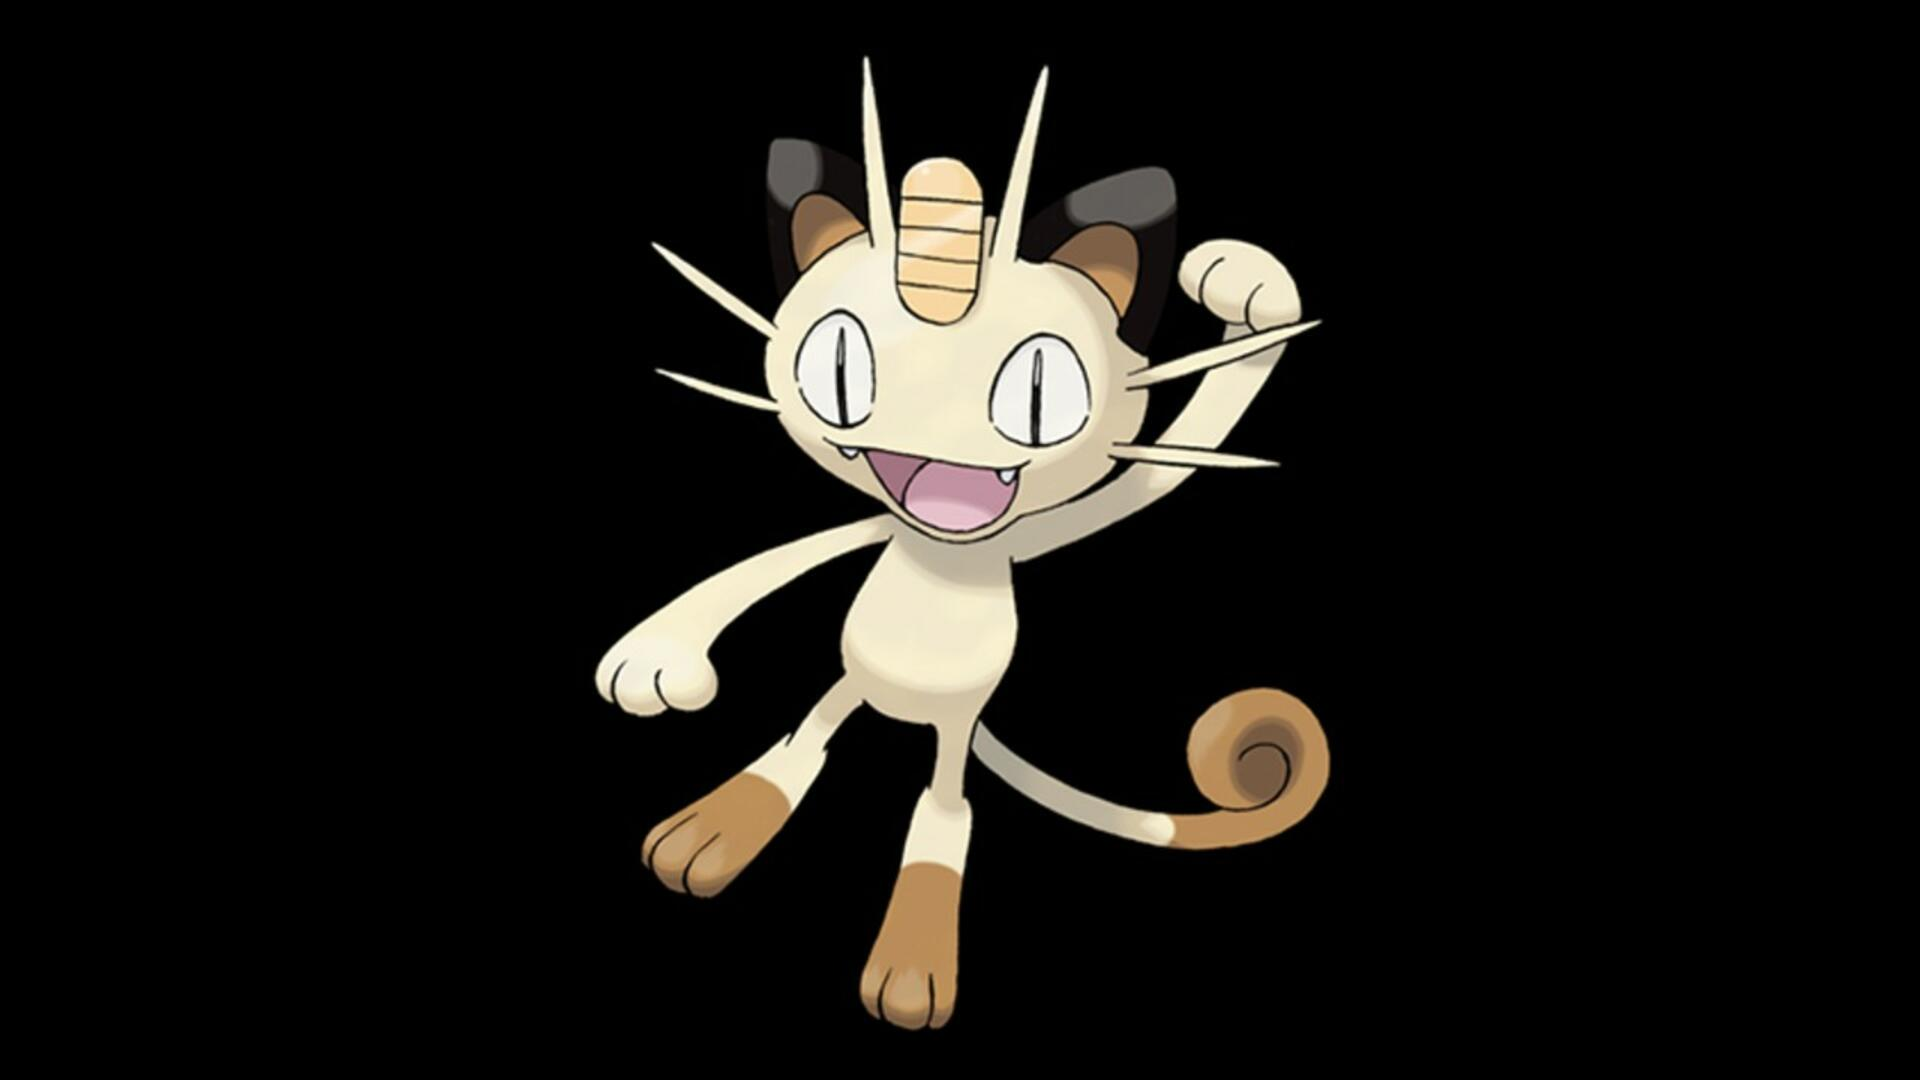 The Only Pokemon Halloween Costume that Matters is This Chonky Cat as Meowth